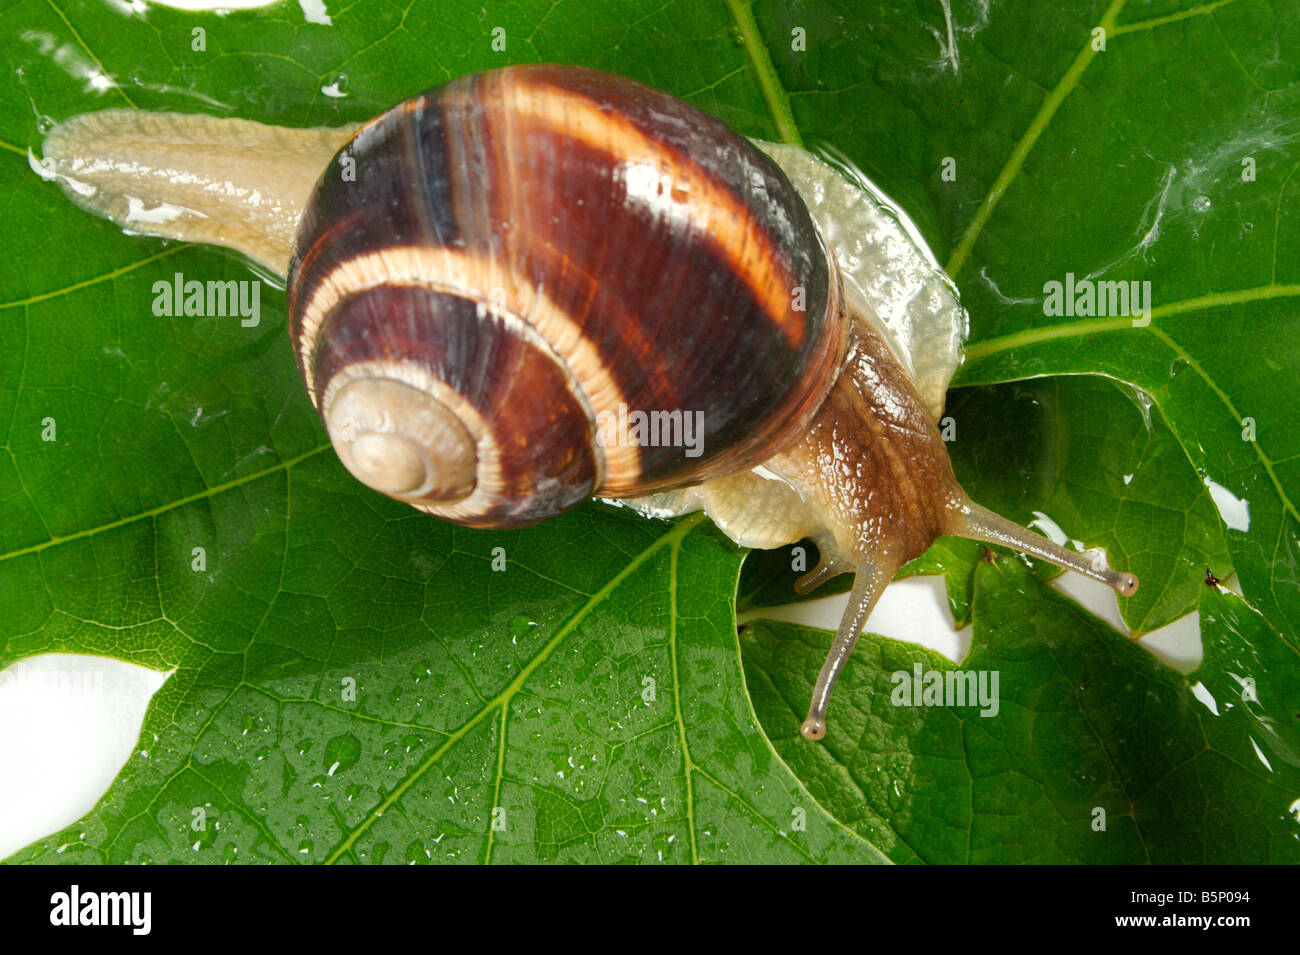 Grape snail on a sheet of a grapes in drops of a rain Stock Photo